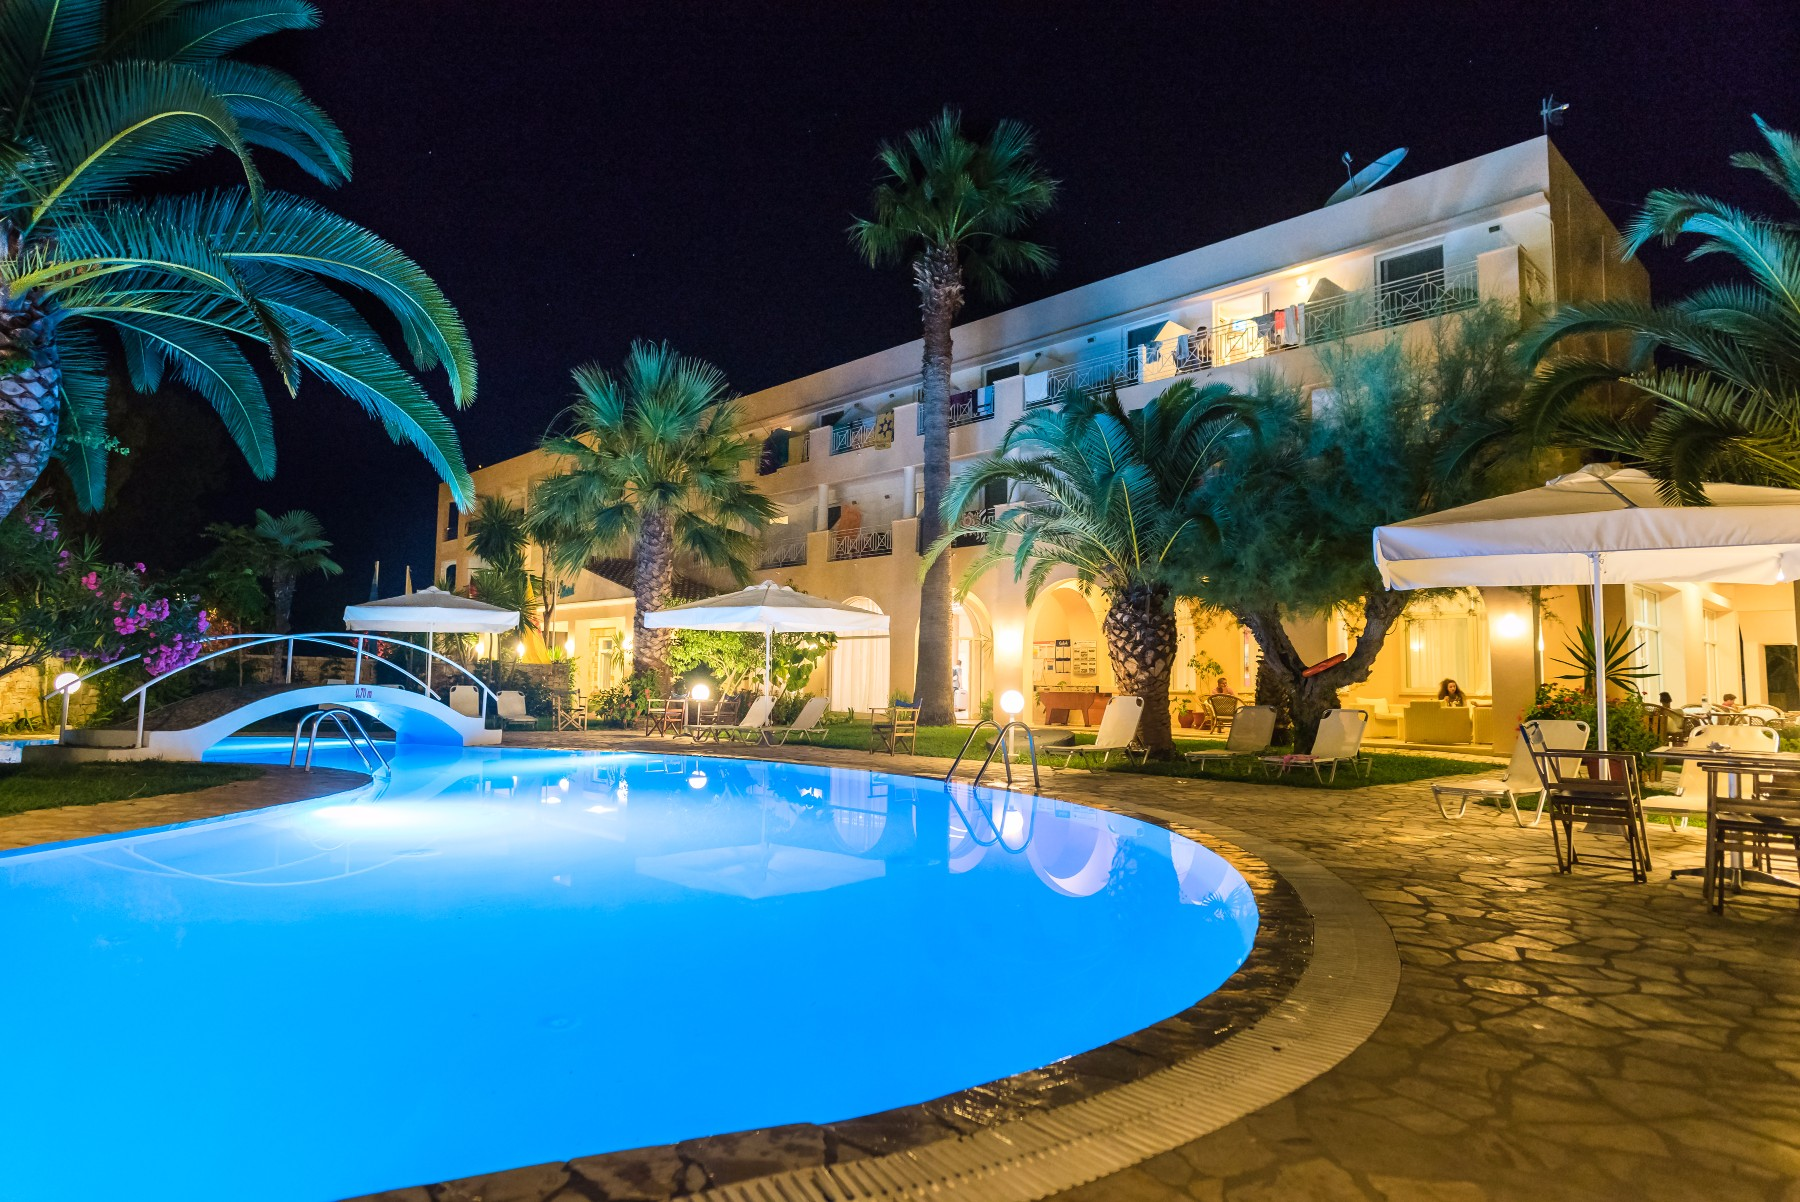 Three Stars Hotel Village, Moraitika, Corfu